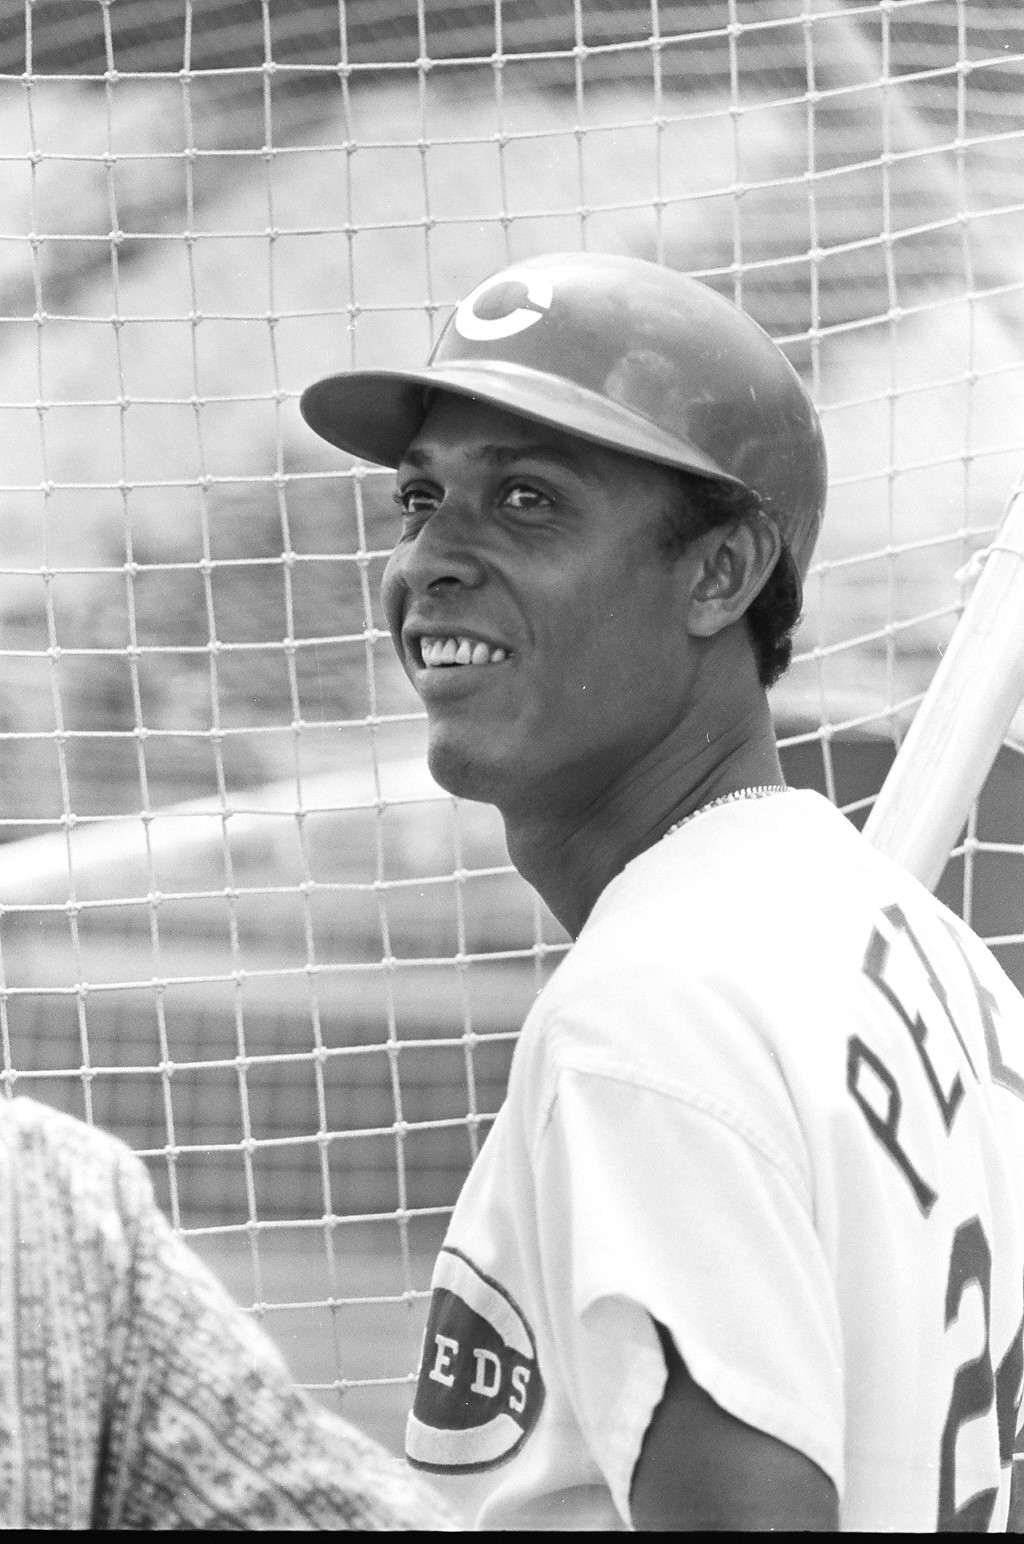 This is my favorite photo of Perez, 1968, 26 years old. He was just  coming off his breakout season of 1967, when he won the MVP of the  previous season's All-Star Game with his 15th-inning home run off  Catfish Hunter. He and wife, Pituka, had become parents in May 1966,  when Victor was born in Cincinnati.